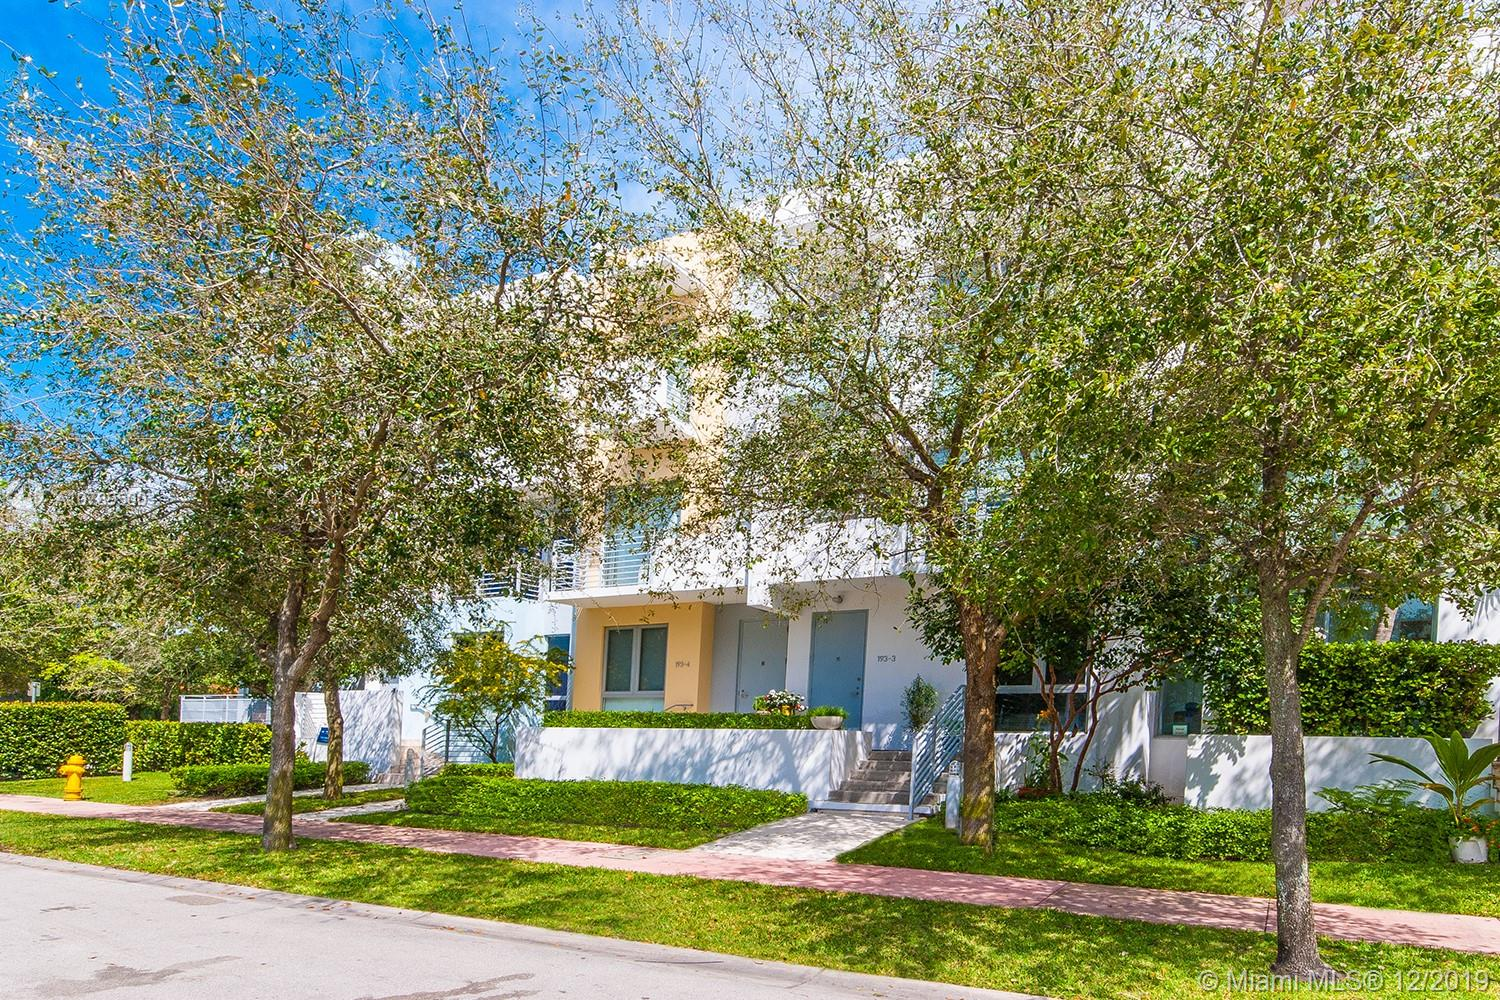 193 N Shore Dr #193-3 For Sale A10789500, FL